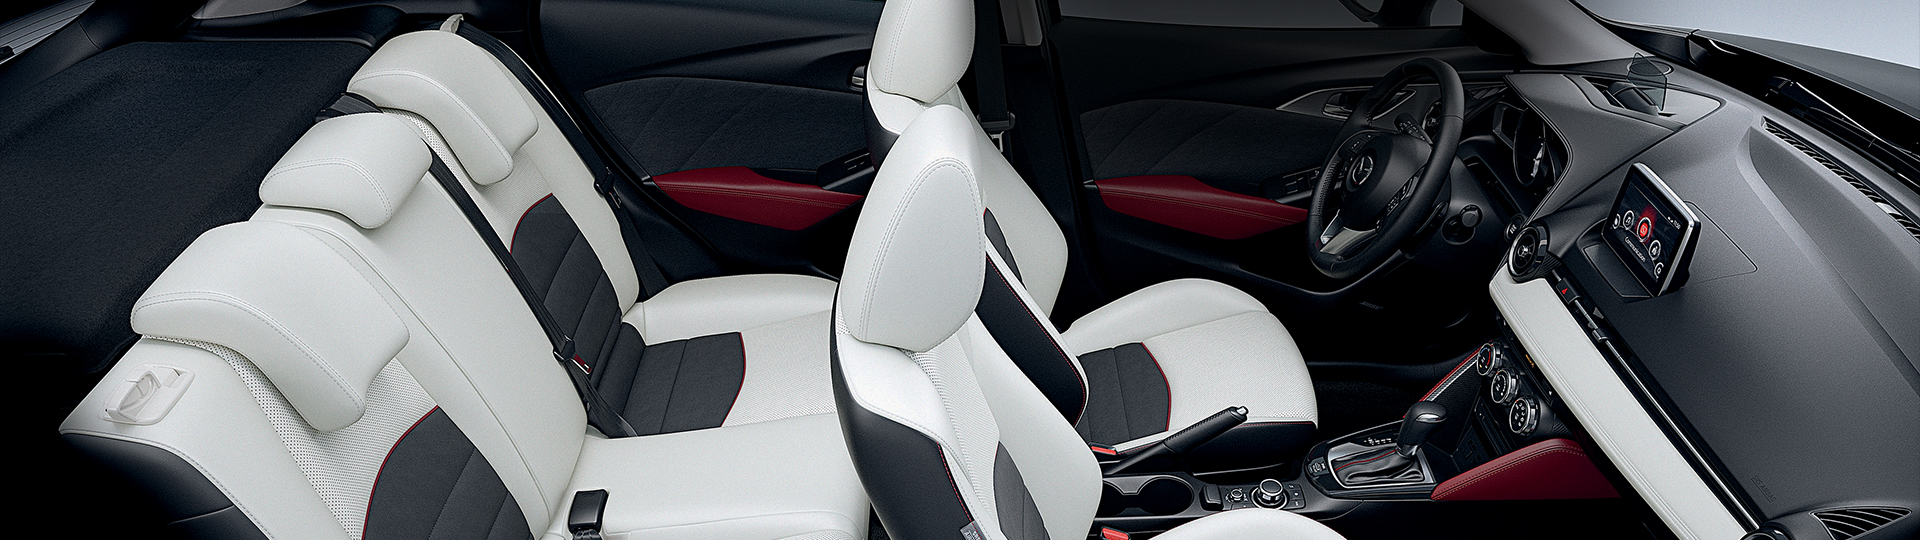 2017-mazda-cx-3-intertior-seating